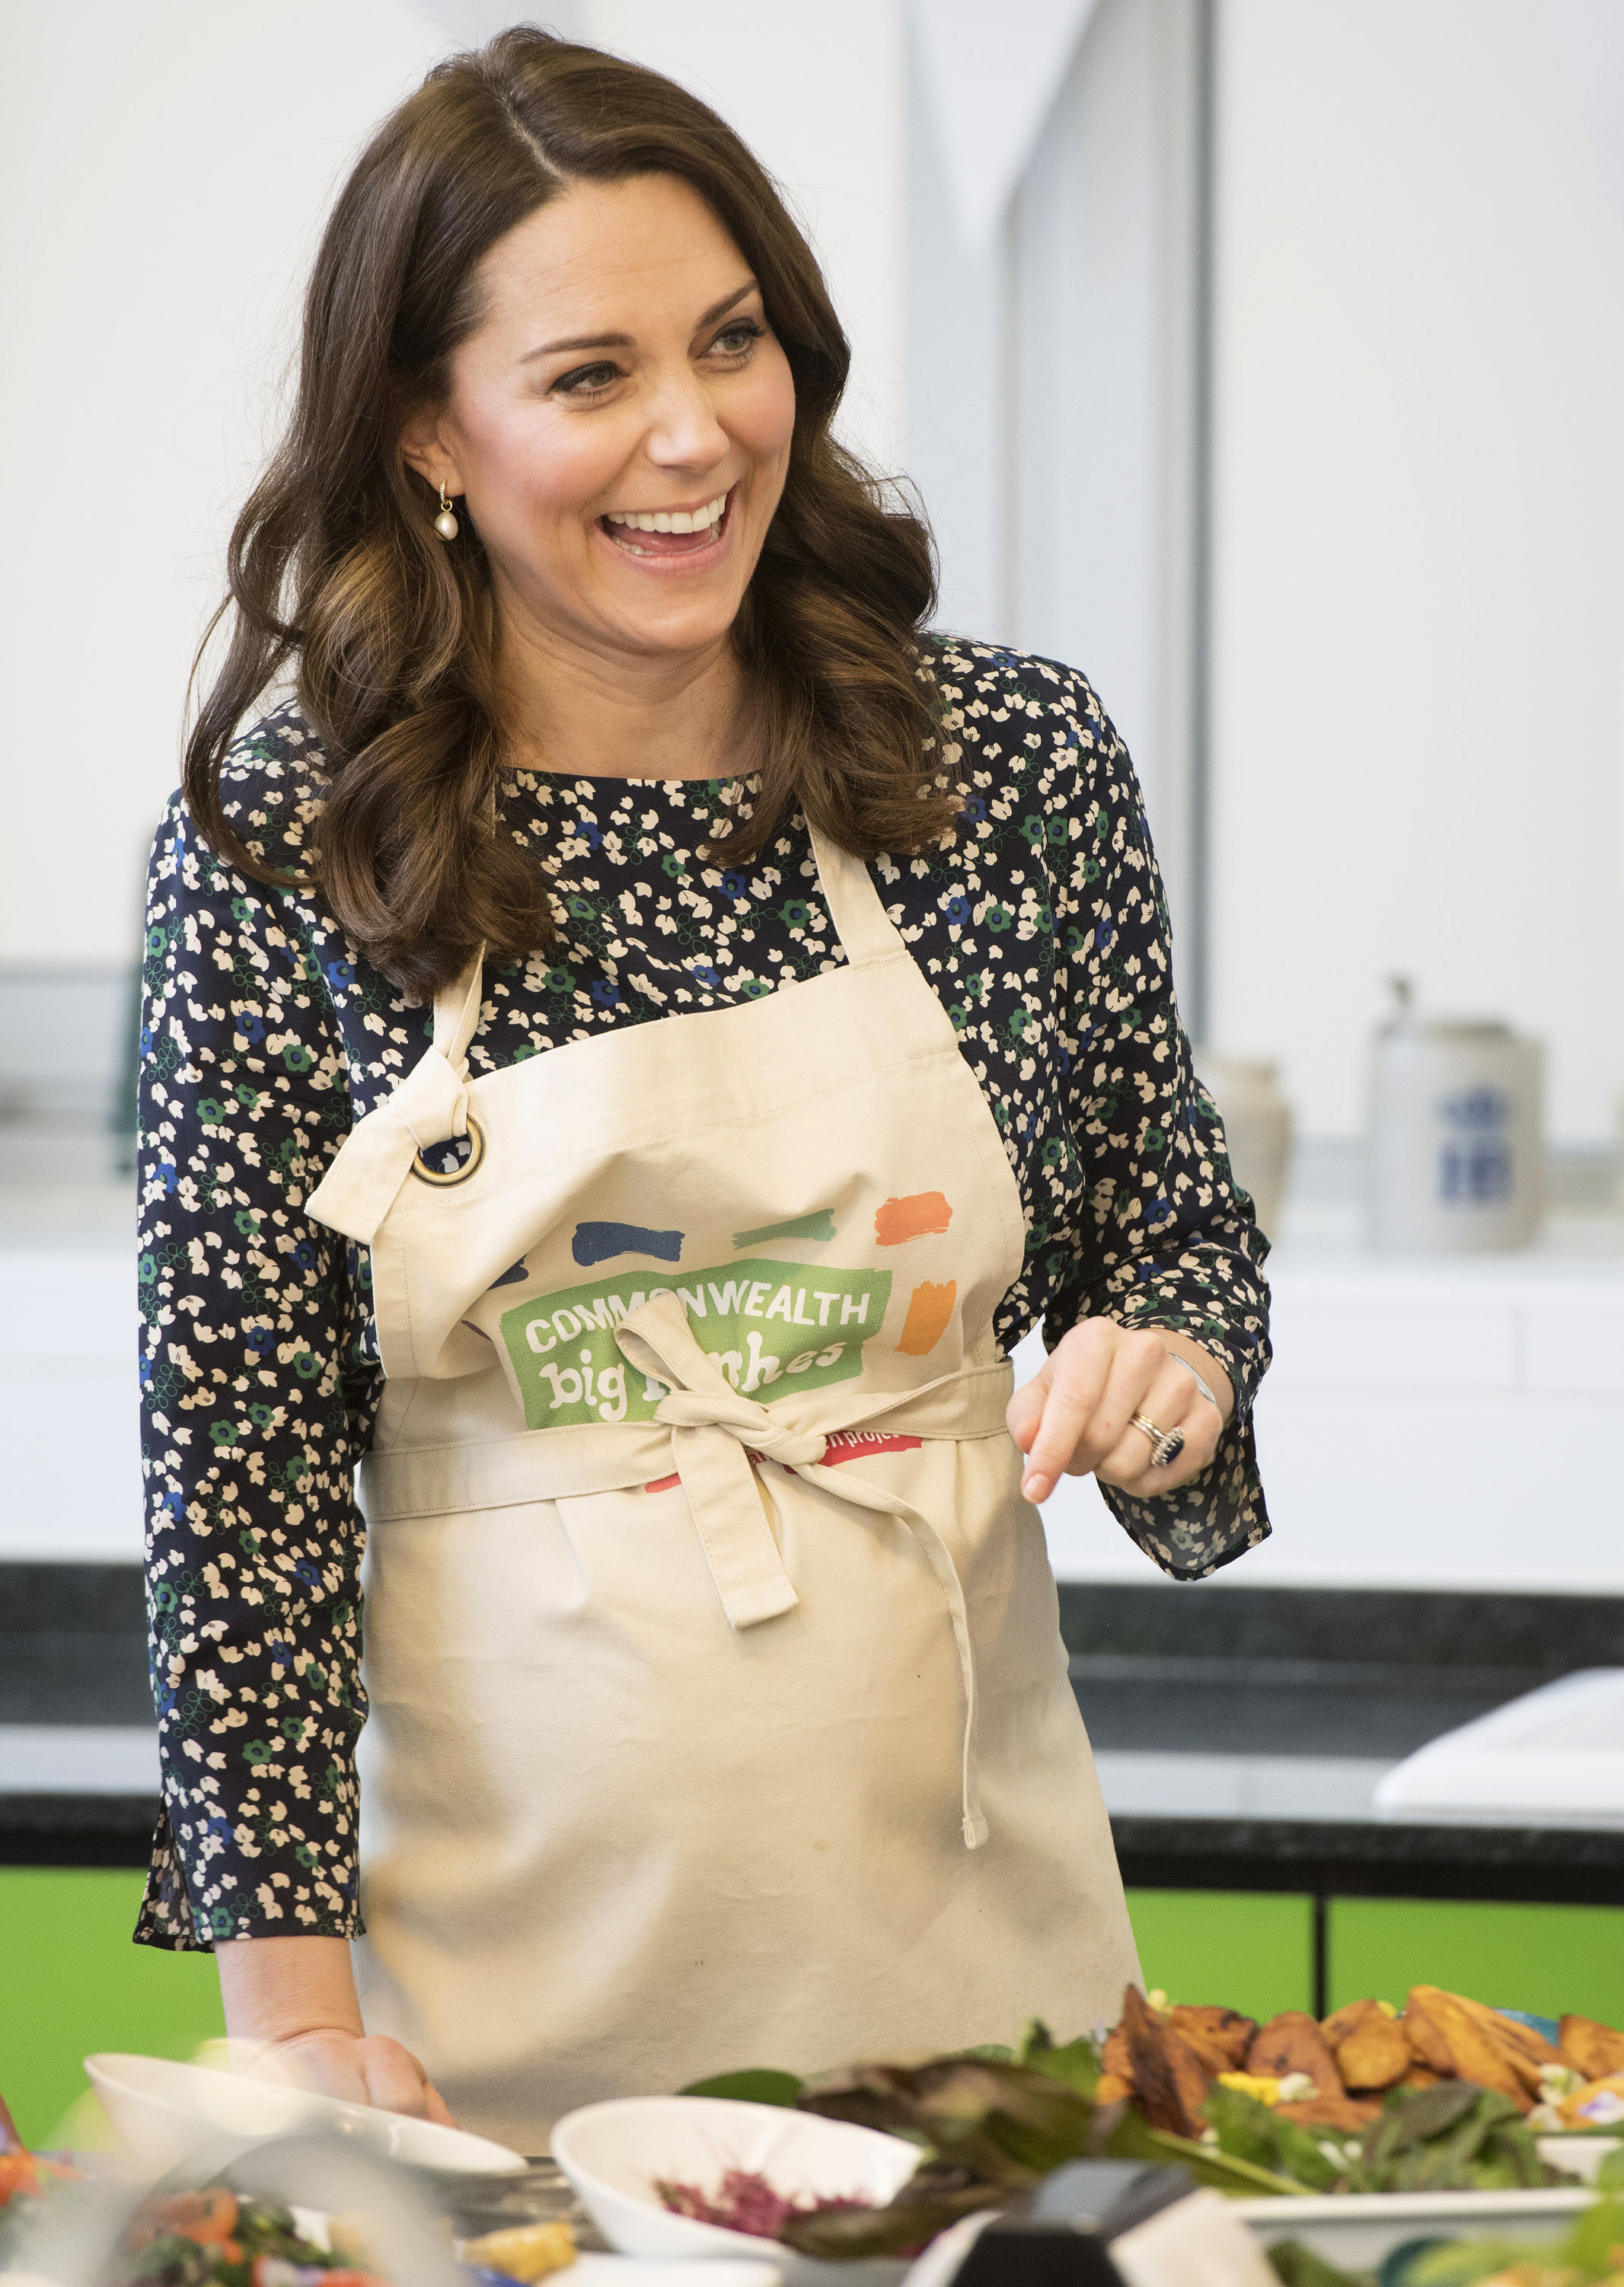 "<div class=""meta image-caption""><div class=""origin-logo origin-image none""><span>none</span></div><span class=""caption-text"">Britain's Kate Duchess of Cambridge taking part in preparations for a Commonwealth Big Lunch at St Luke's Community Centre, London, Thursday March 22, 2018. (Paul Edwards/ Pool via AP)</span></div>"